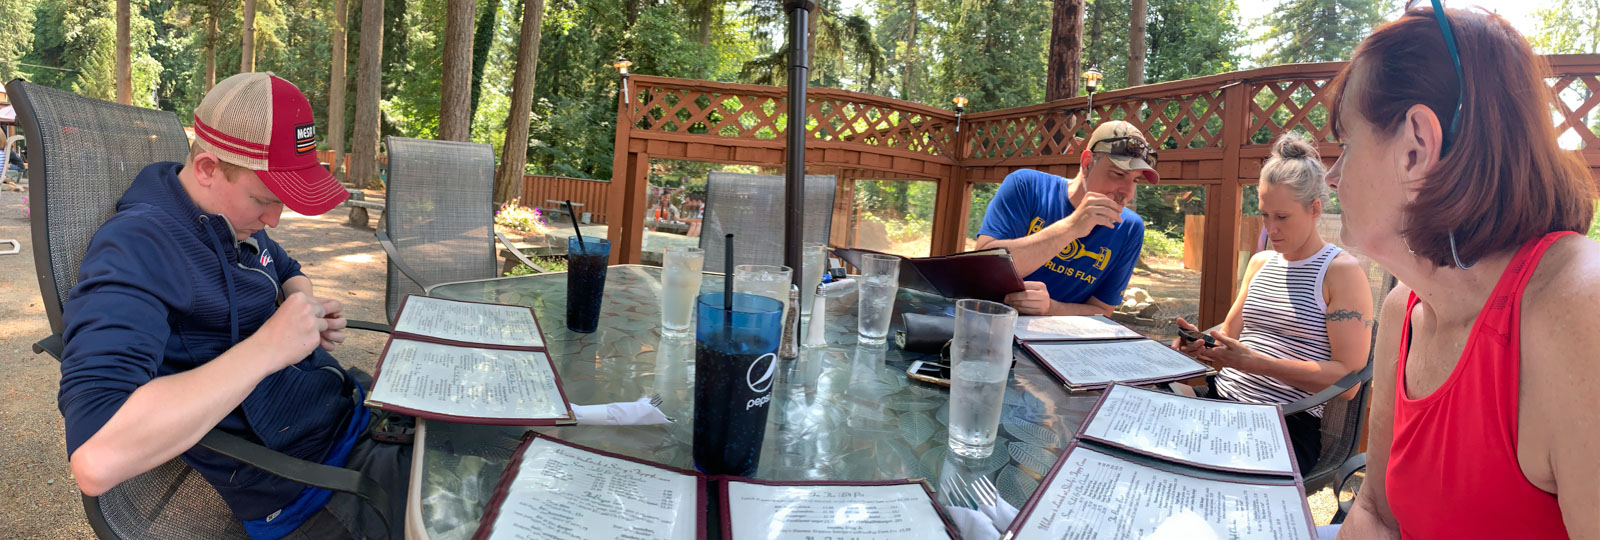 Table pano!